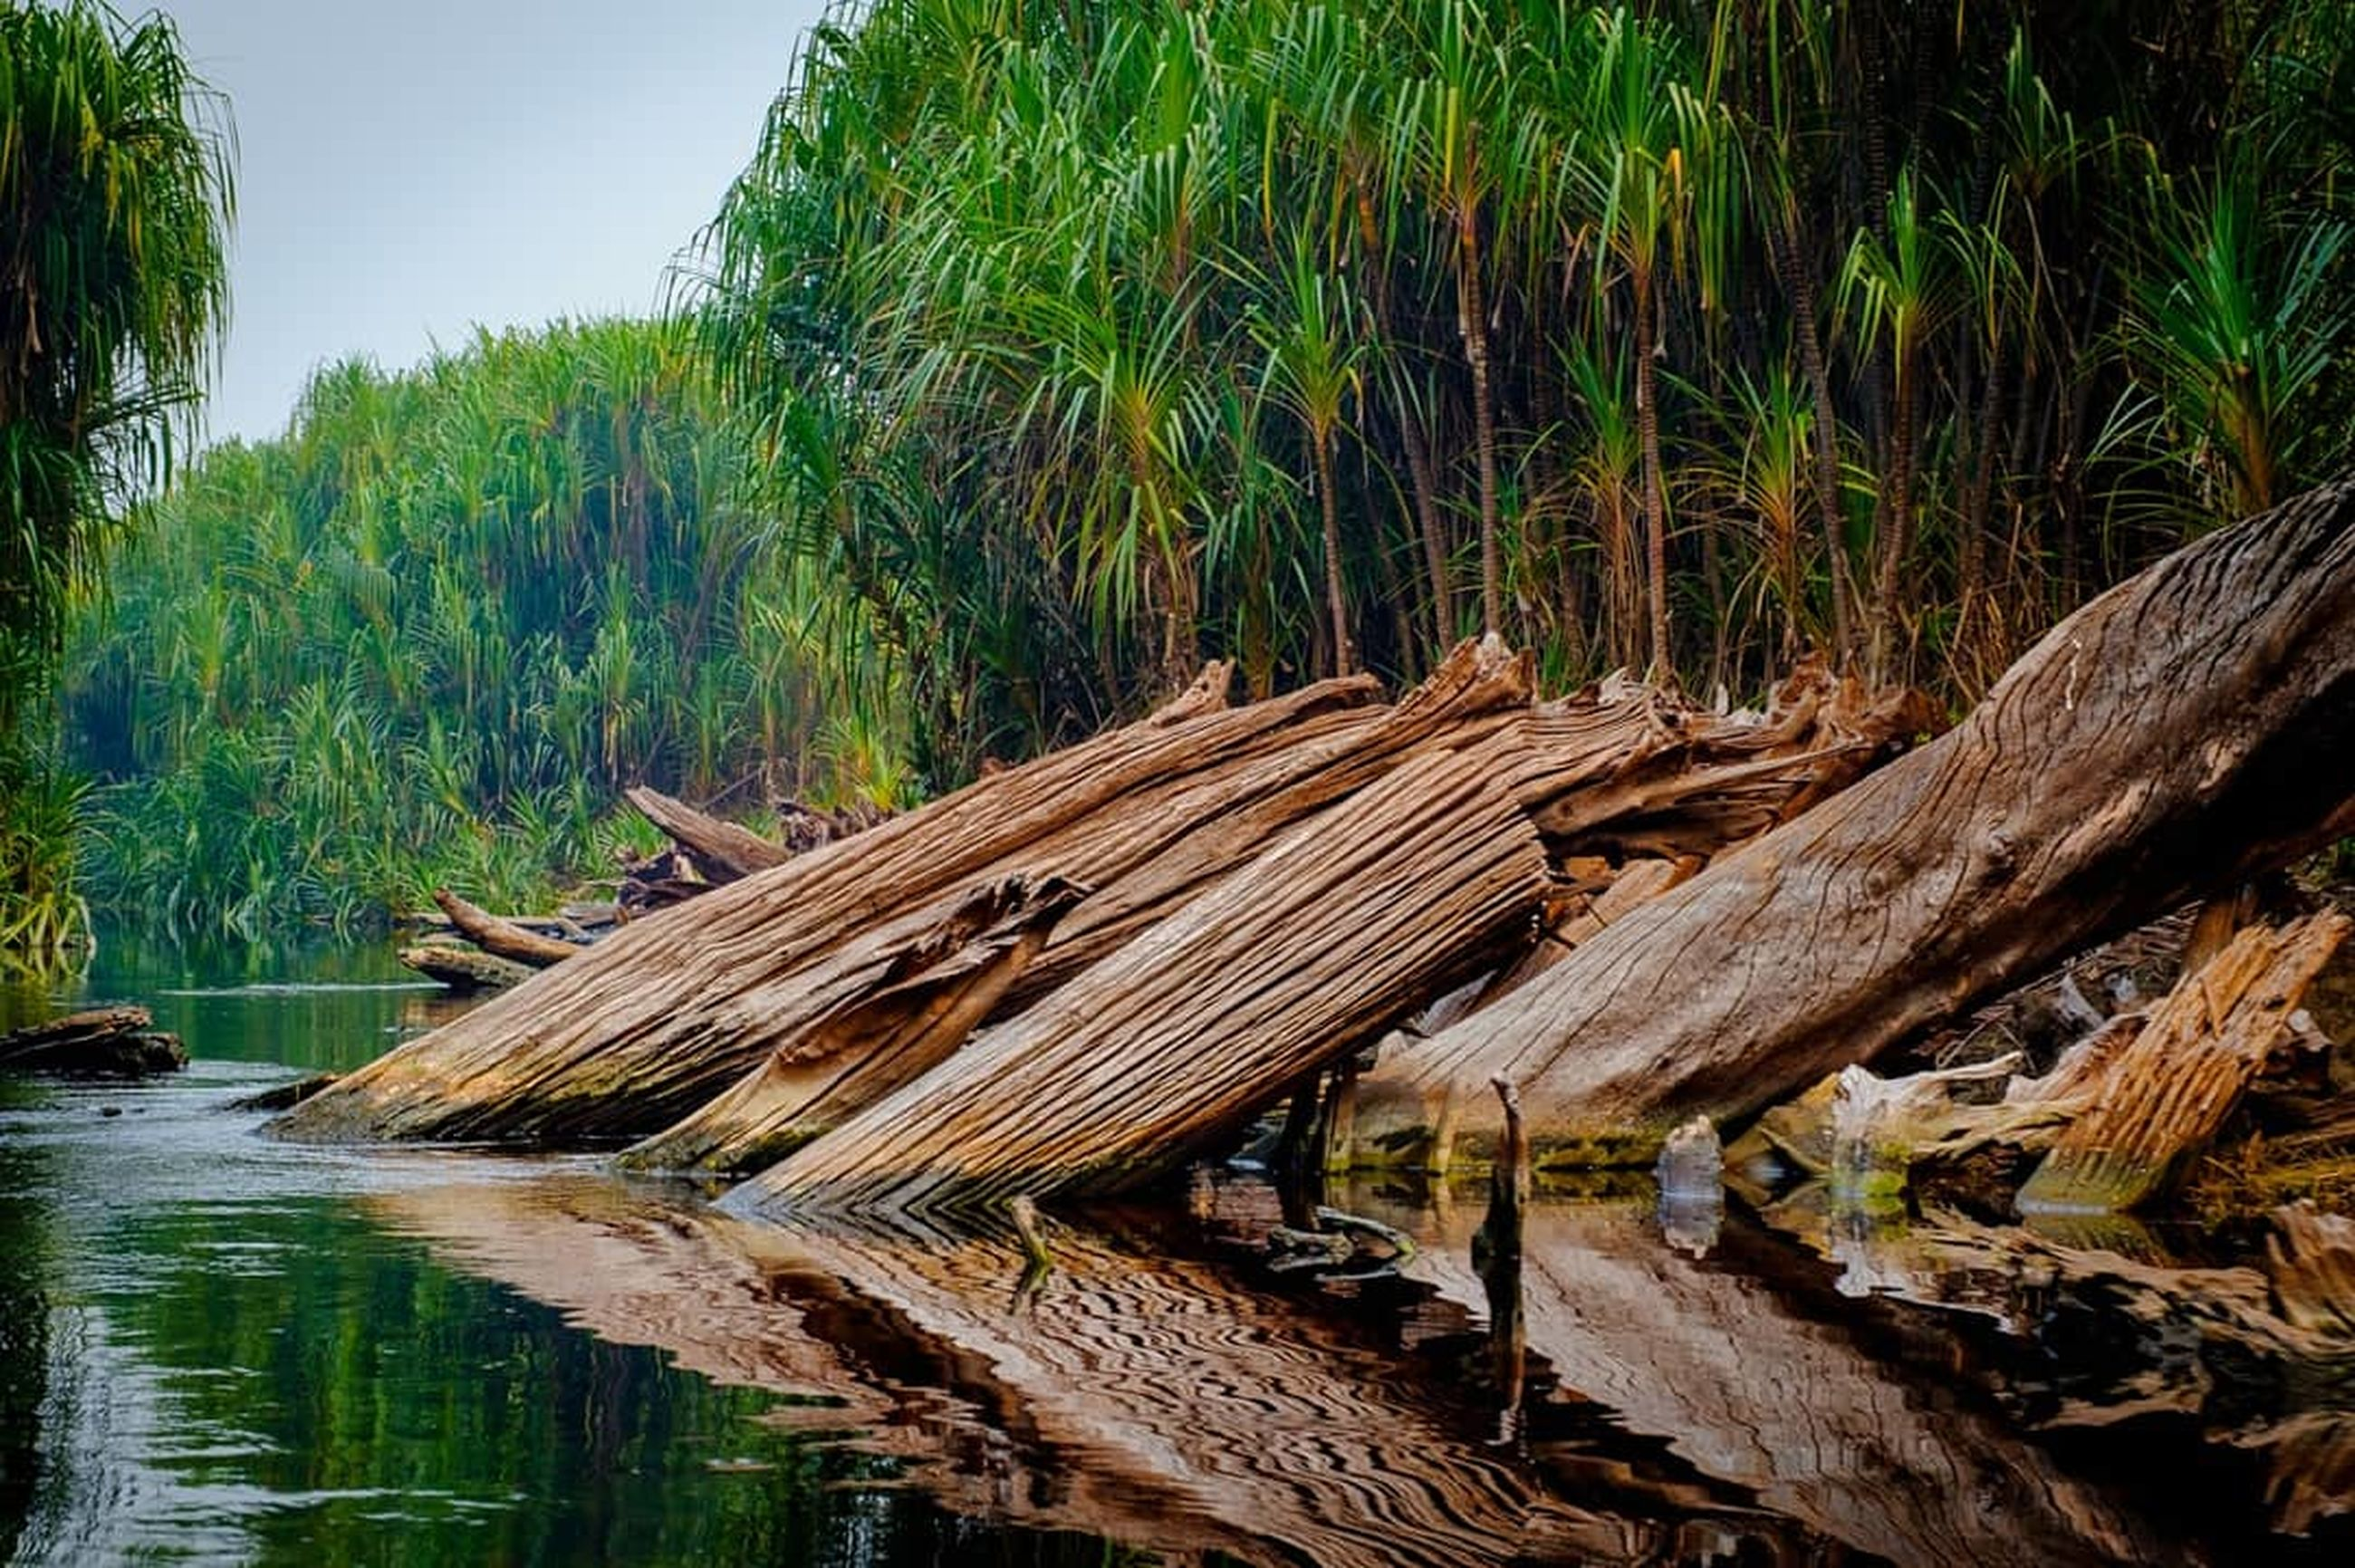 wood - material, plant, tree, water, nature, forest, no people, day, wood, lake, log, tranquility, timber, growth, land, outdoors, green color, tranquil scene